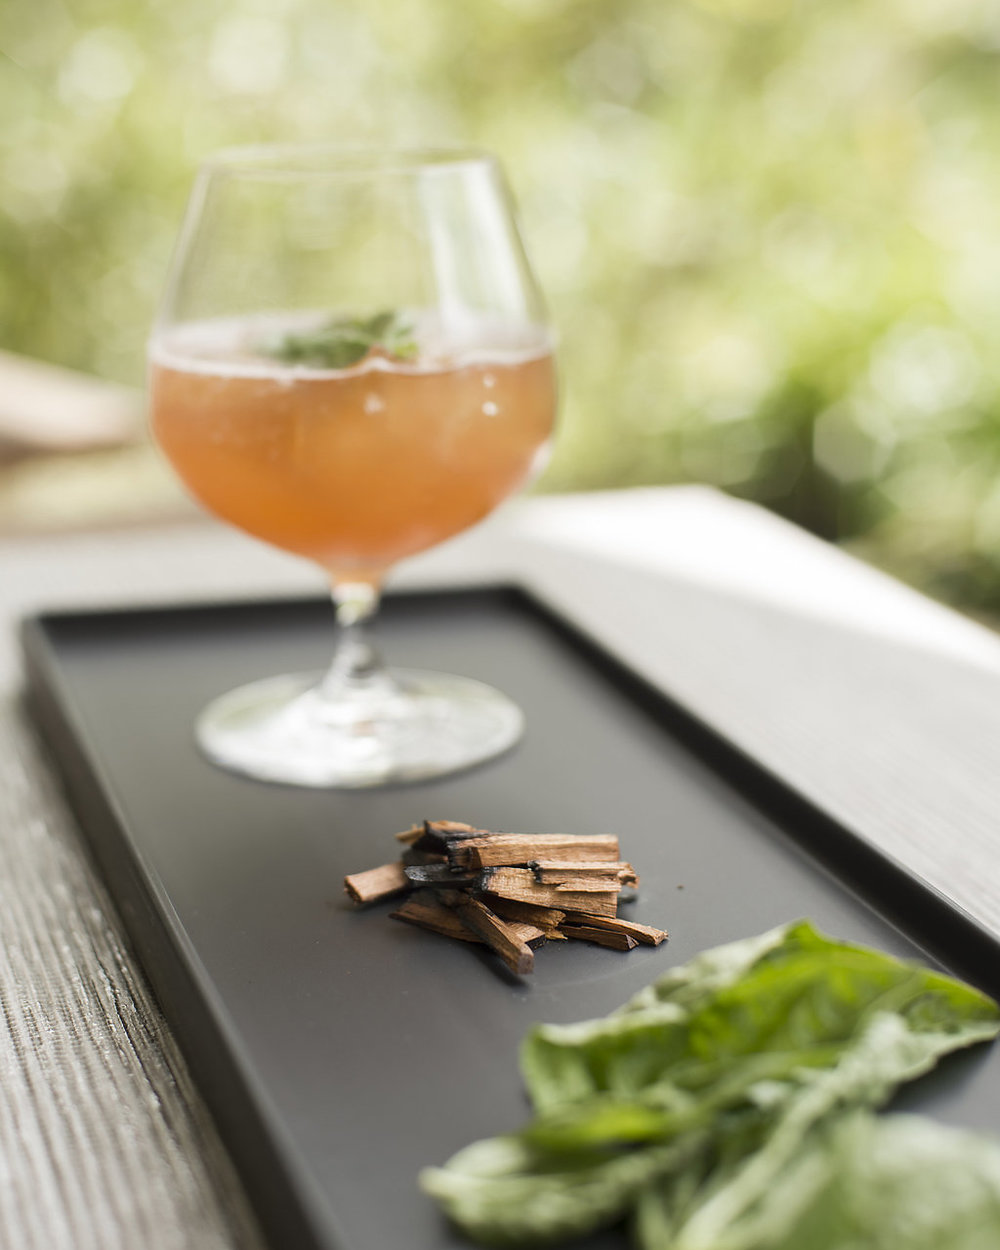 SMOKED BASIL   garden basil, fresh pressed lime, cherry wood smoke, maraschino liqueur, aged rum